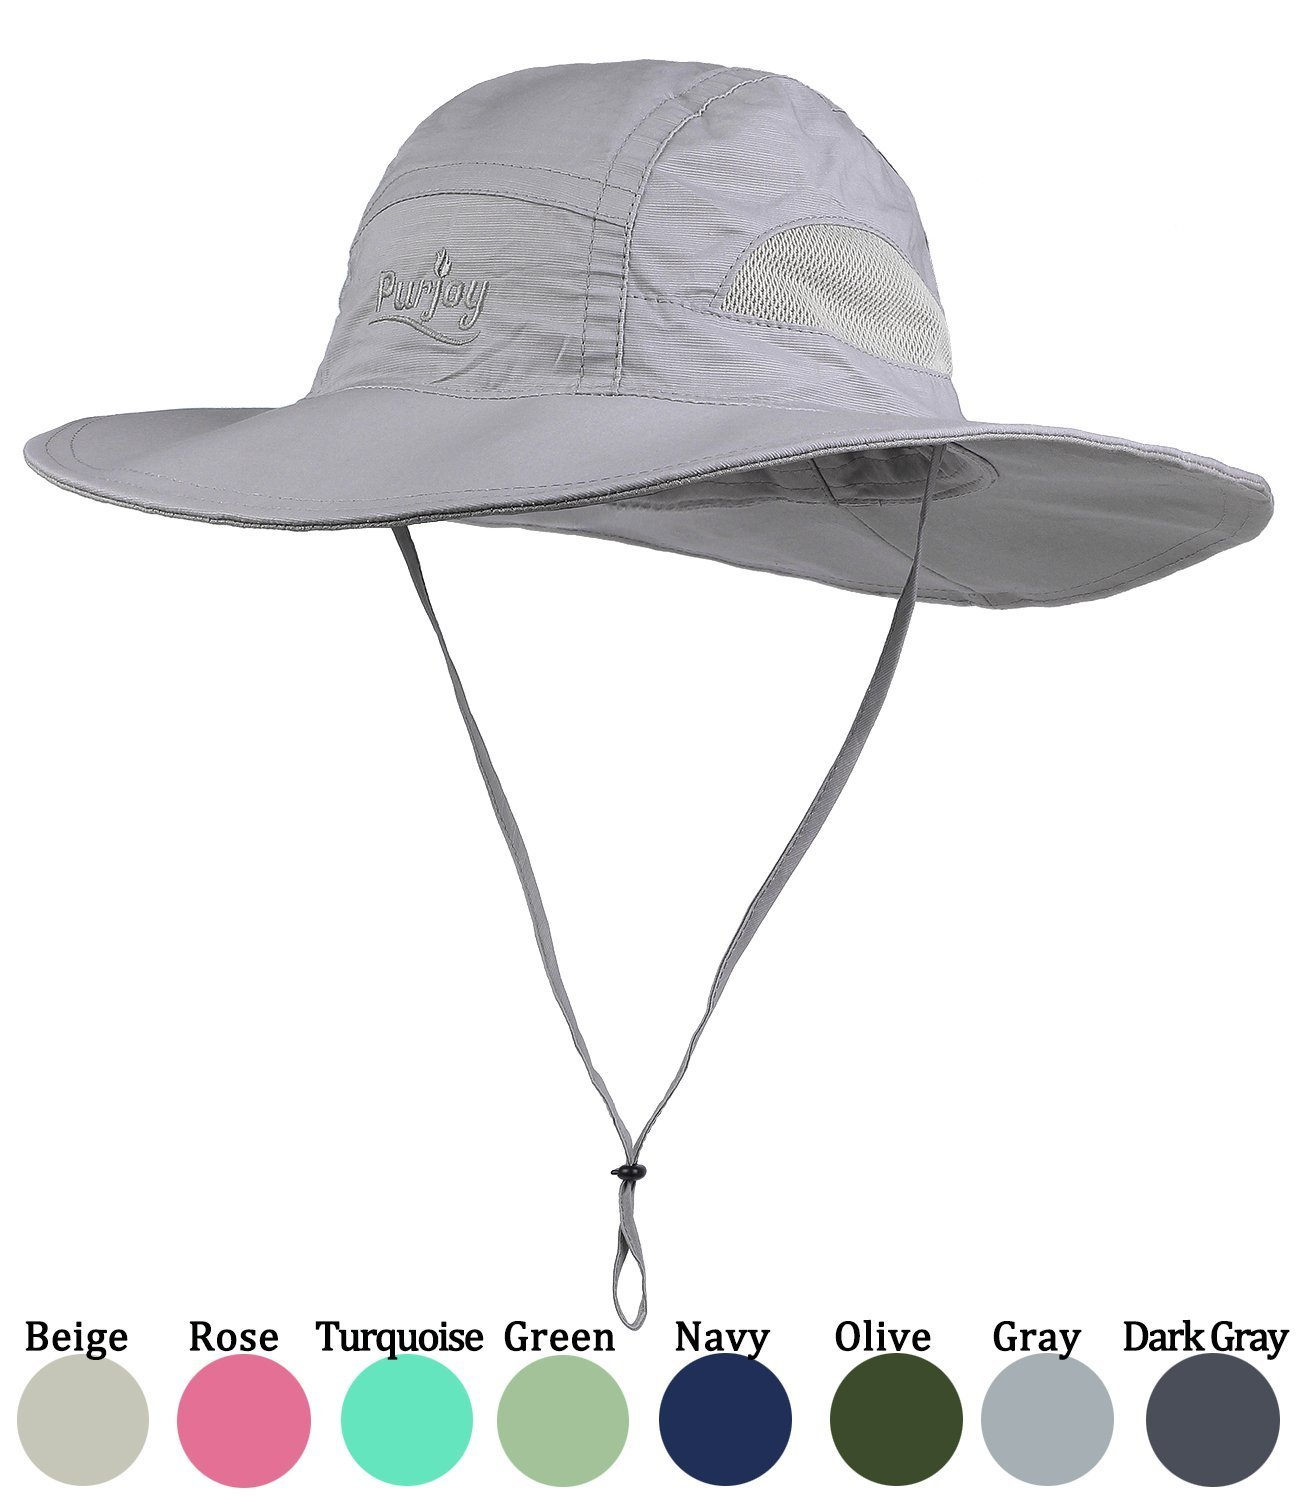 Purjoy Sun Hat for Men & Women,Wide Brim UV Protection Beach Cap, Breathable Outdoor Boonie Hats with Adjustable Drawstring Design,Perfect for Hiking,Fishing,Camping,Boating(Gray1)